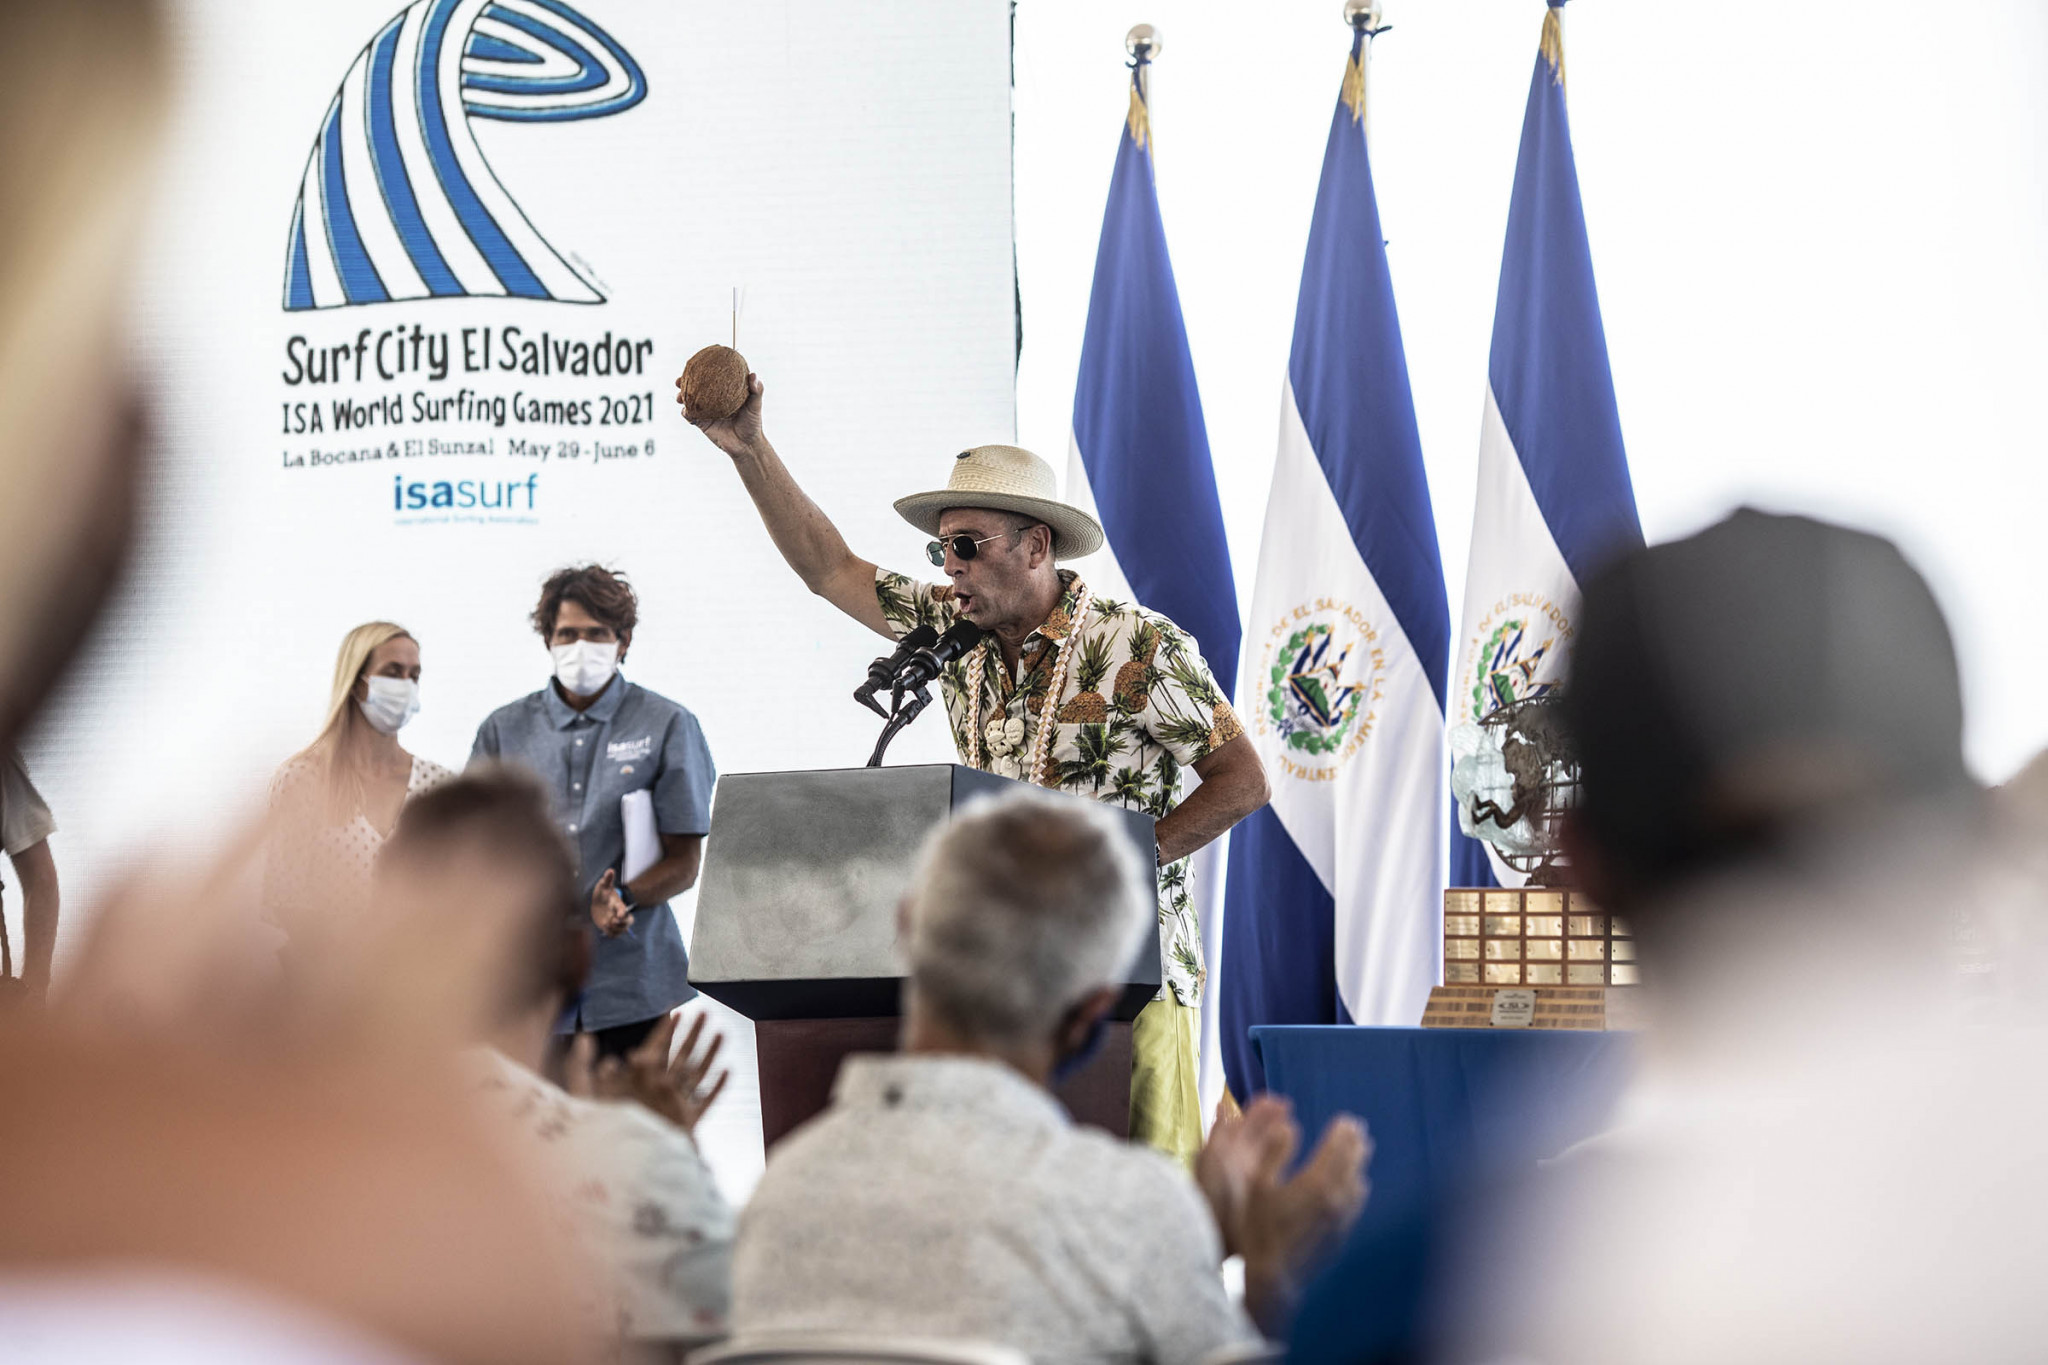 """ISA President insists withdrawals do not detract from """"wonderful"""" World Surfing Games"""